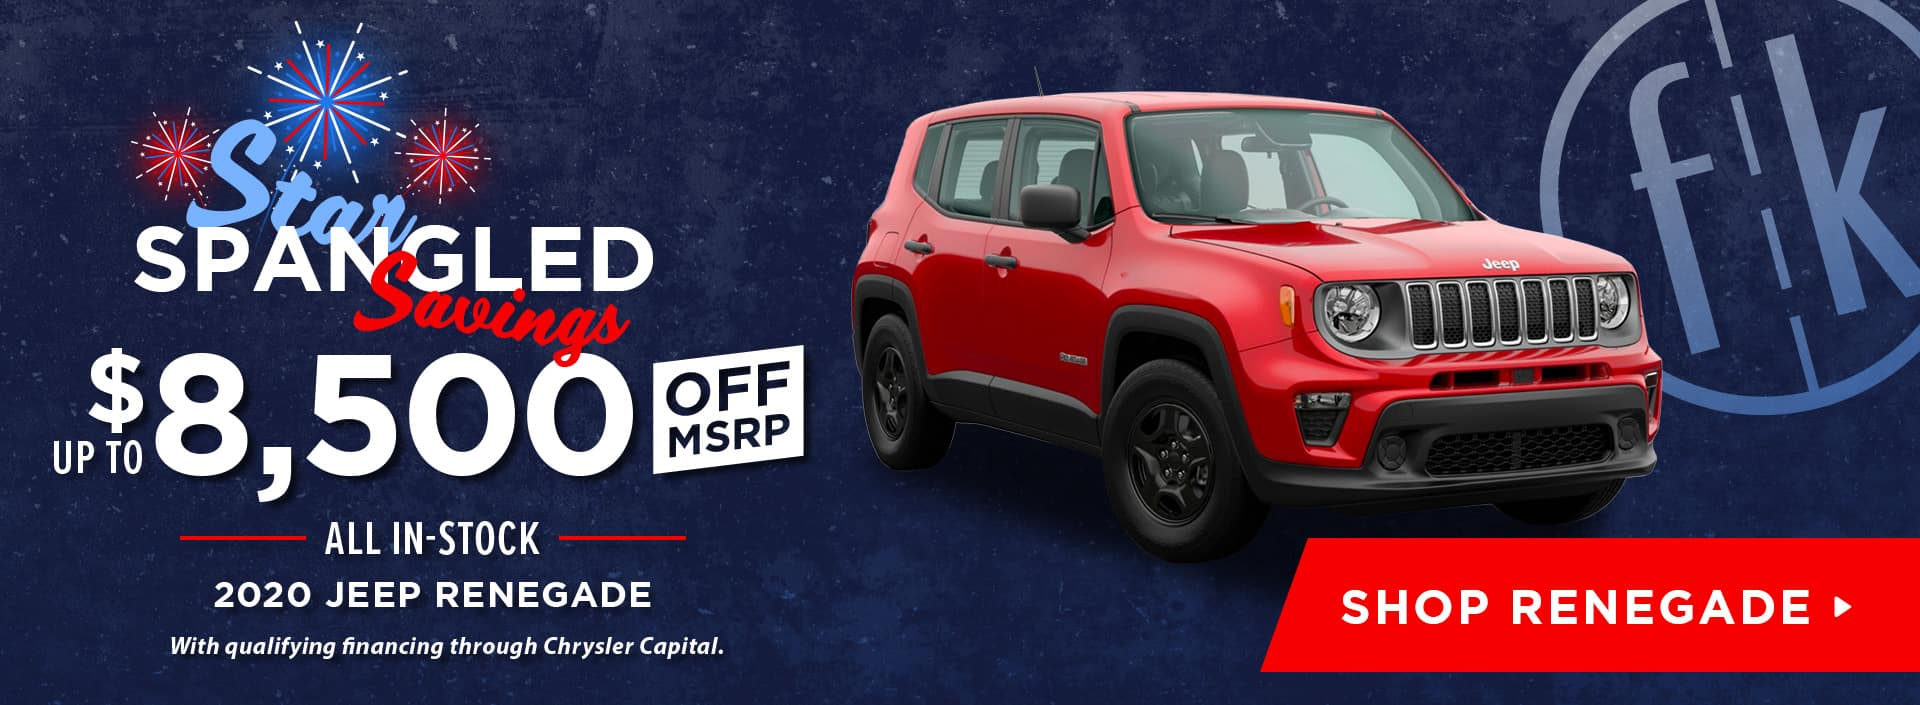 Up To $8,500 Off All In-Stock 2020 Jeep Renegade